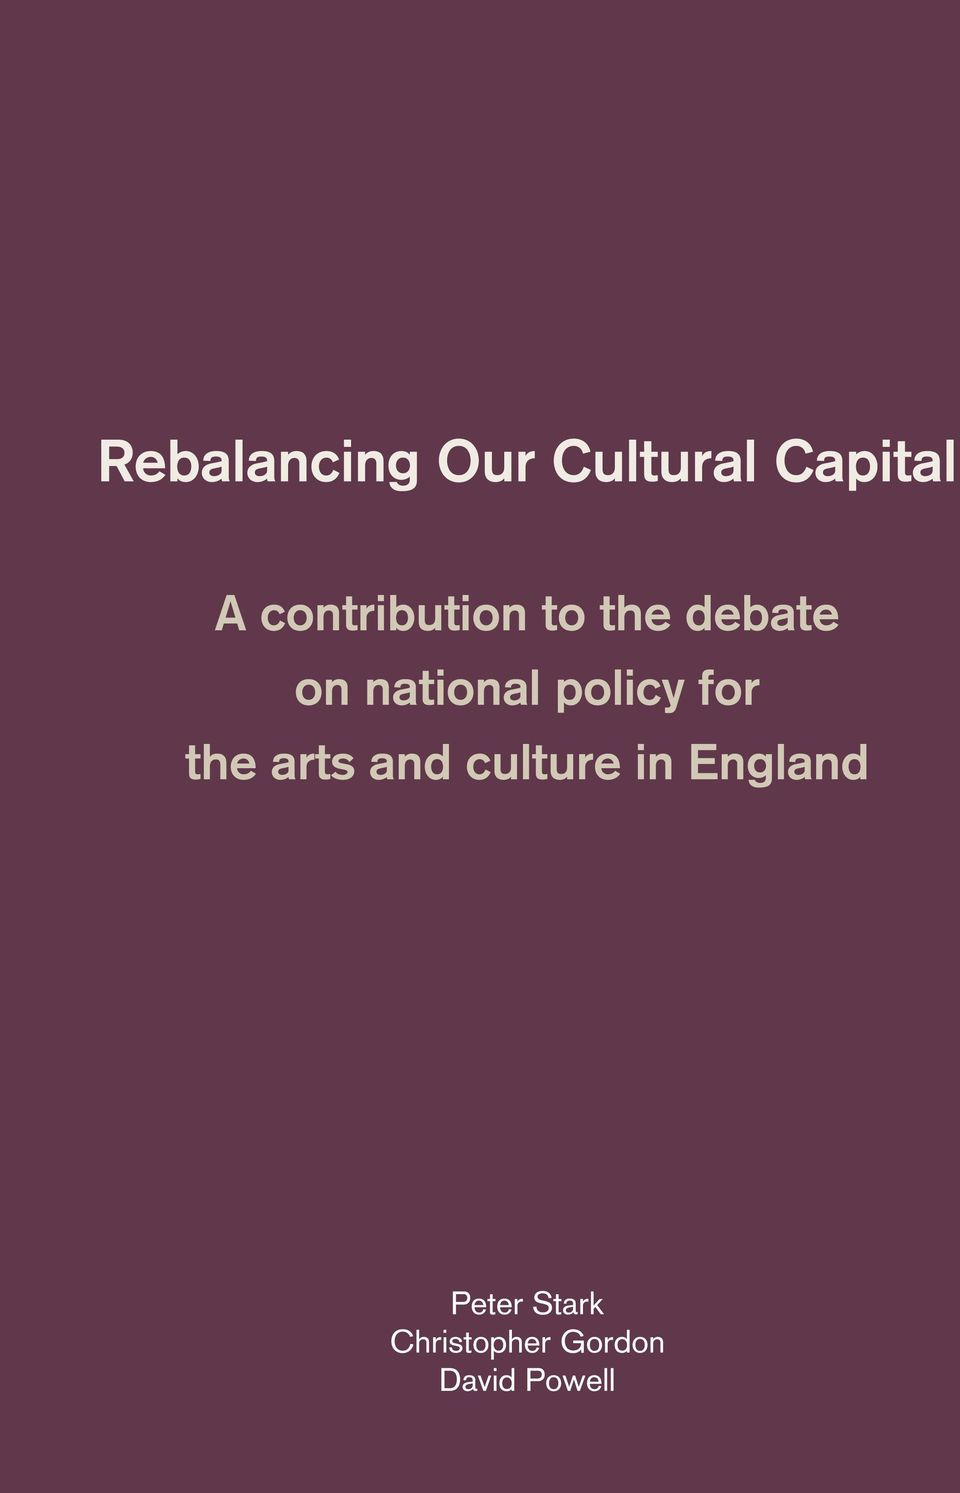 policy for the arts and culture in